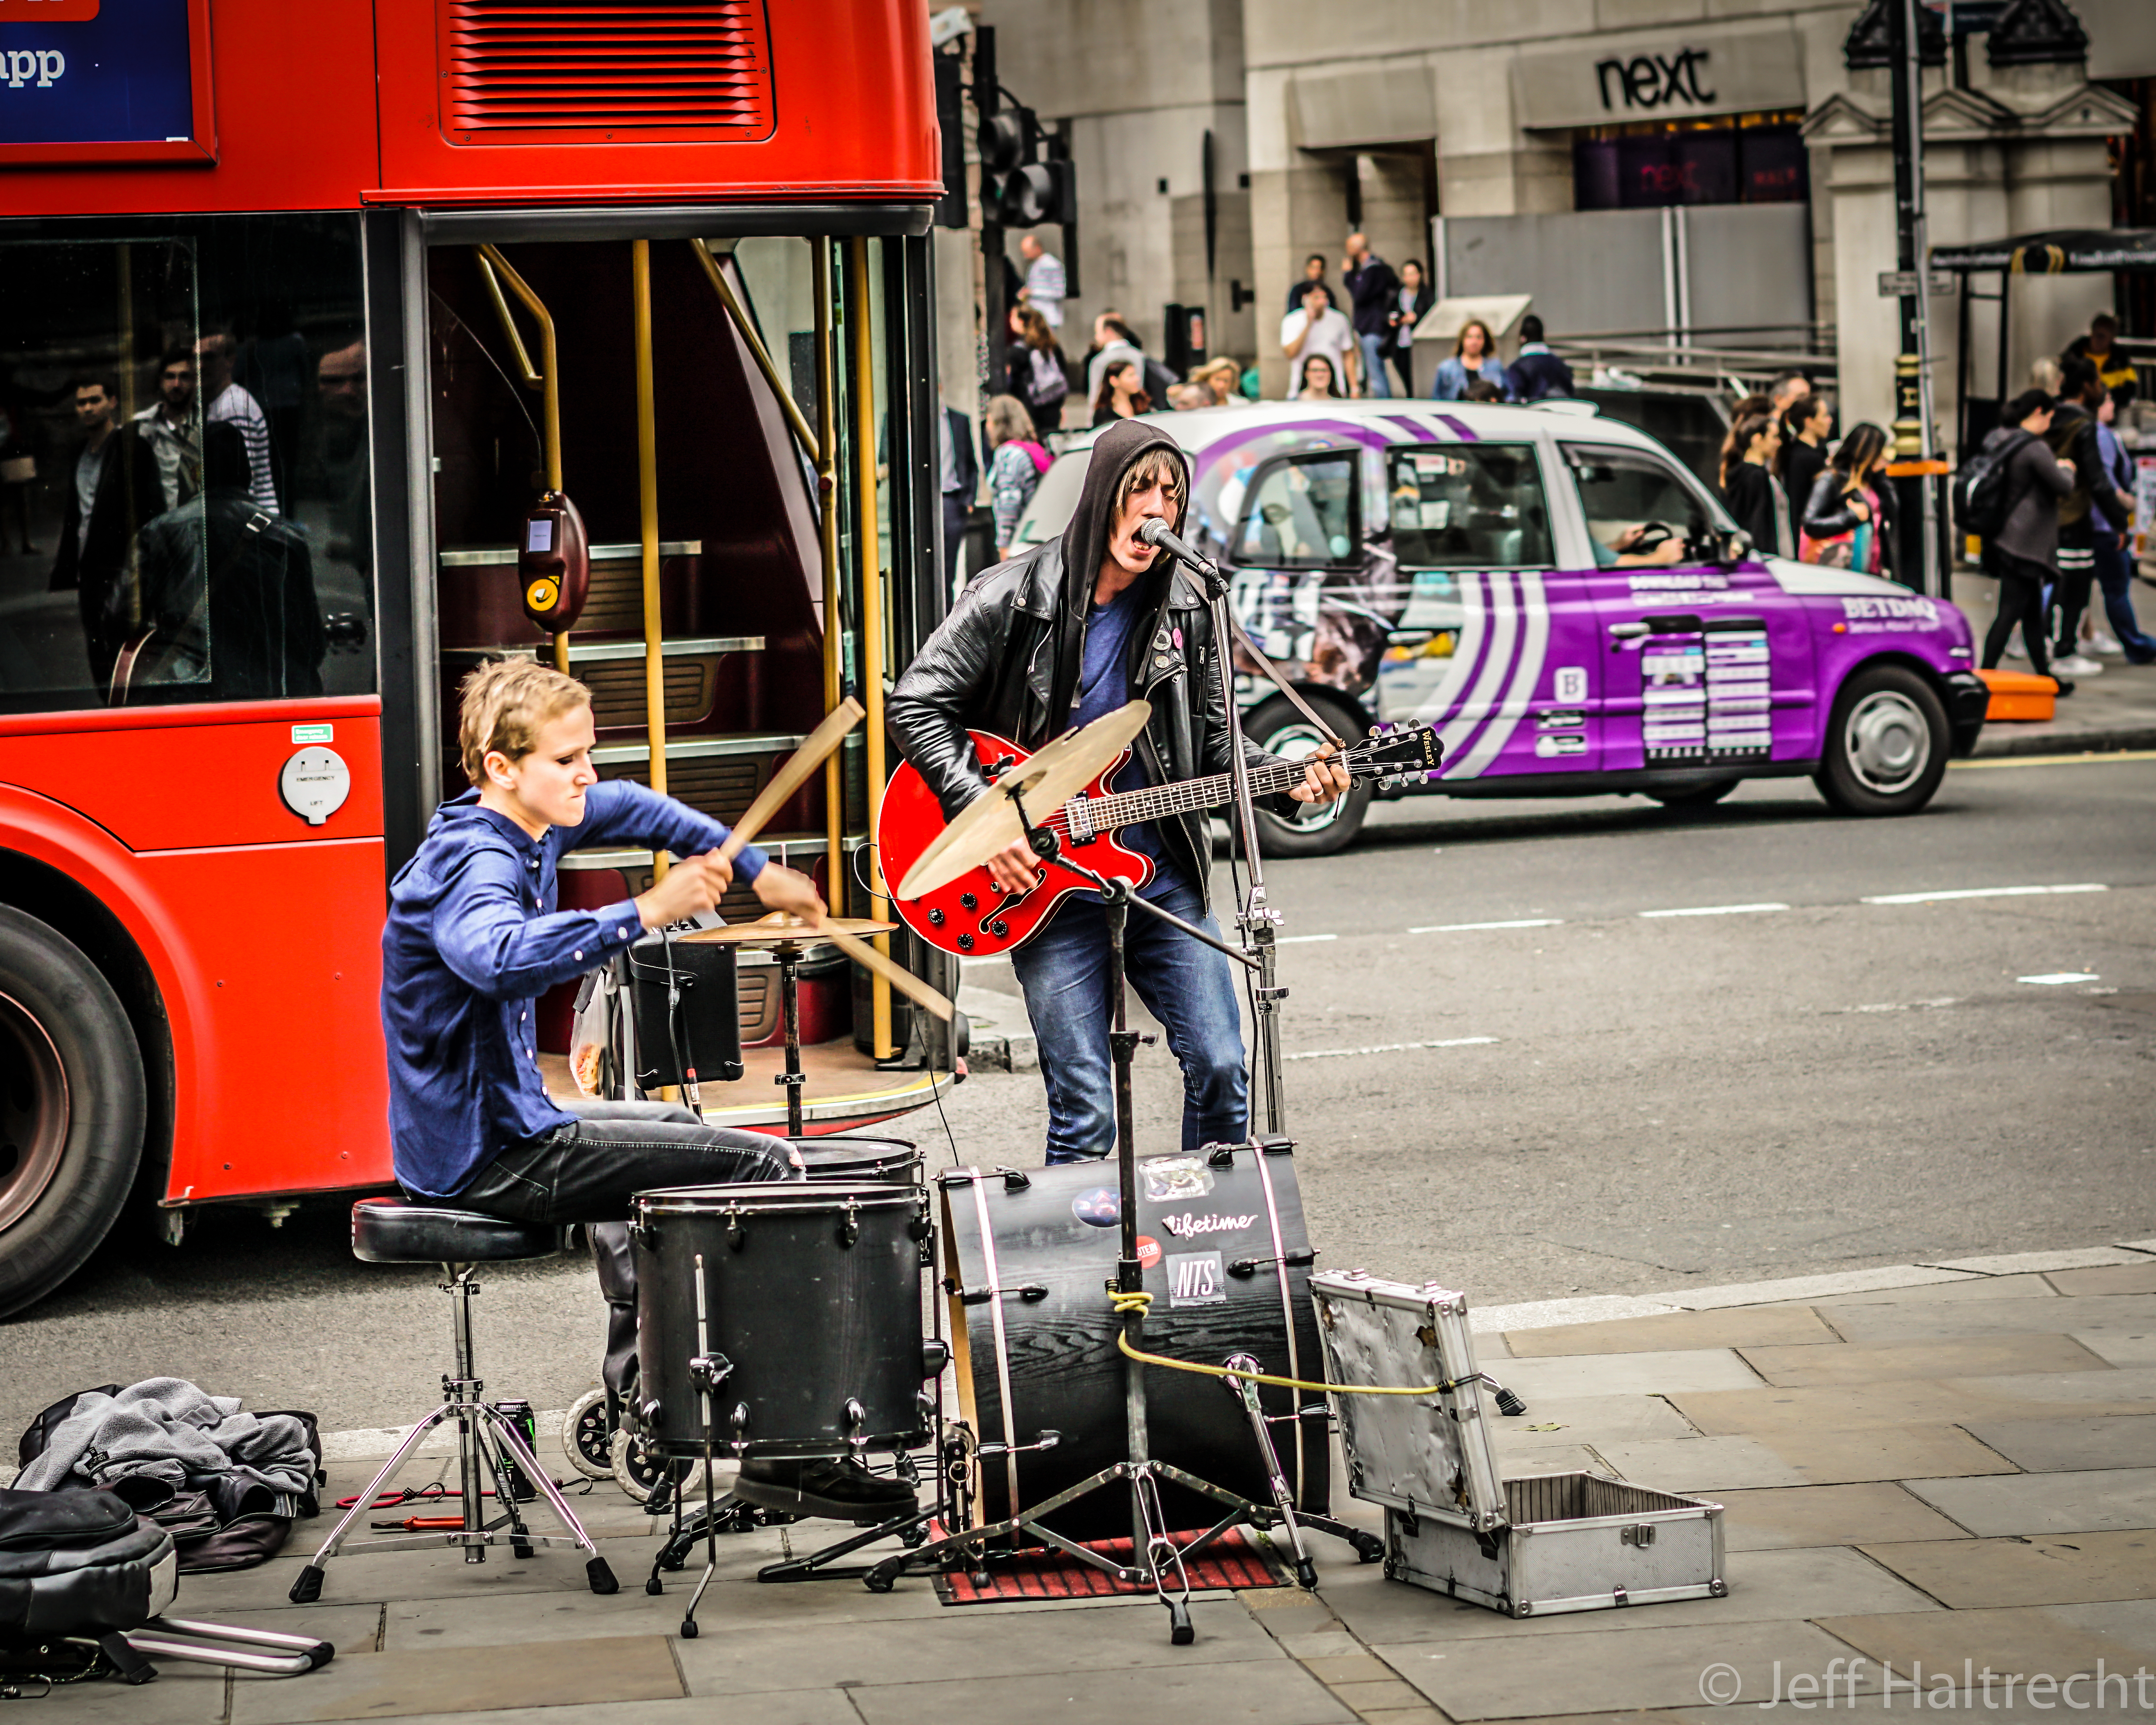 tommy and mary live band streets london england